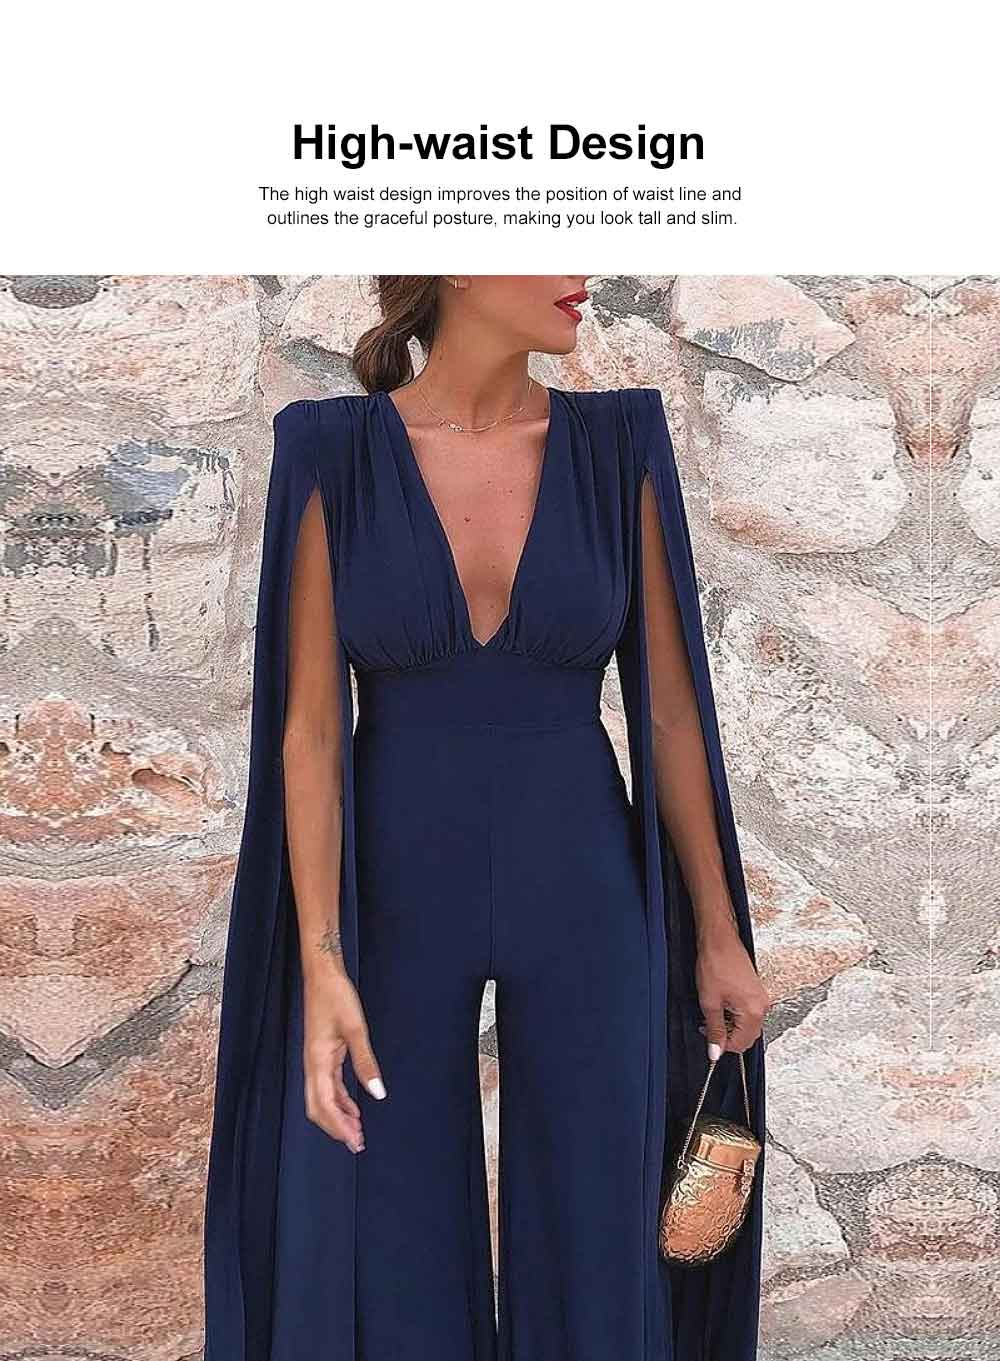 2019 Backless Jumpsuit For Lady, Women's Fashion Sexy Party Evening Bodysuits Rompers, Long Sleeve and Loose Trousers 1